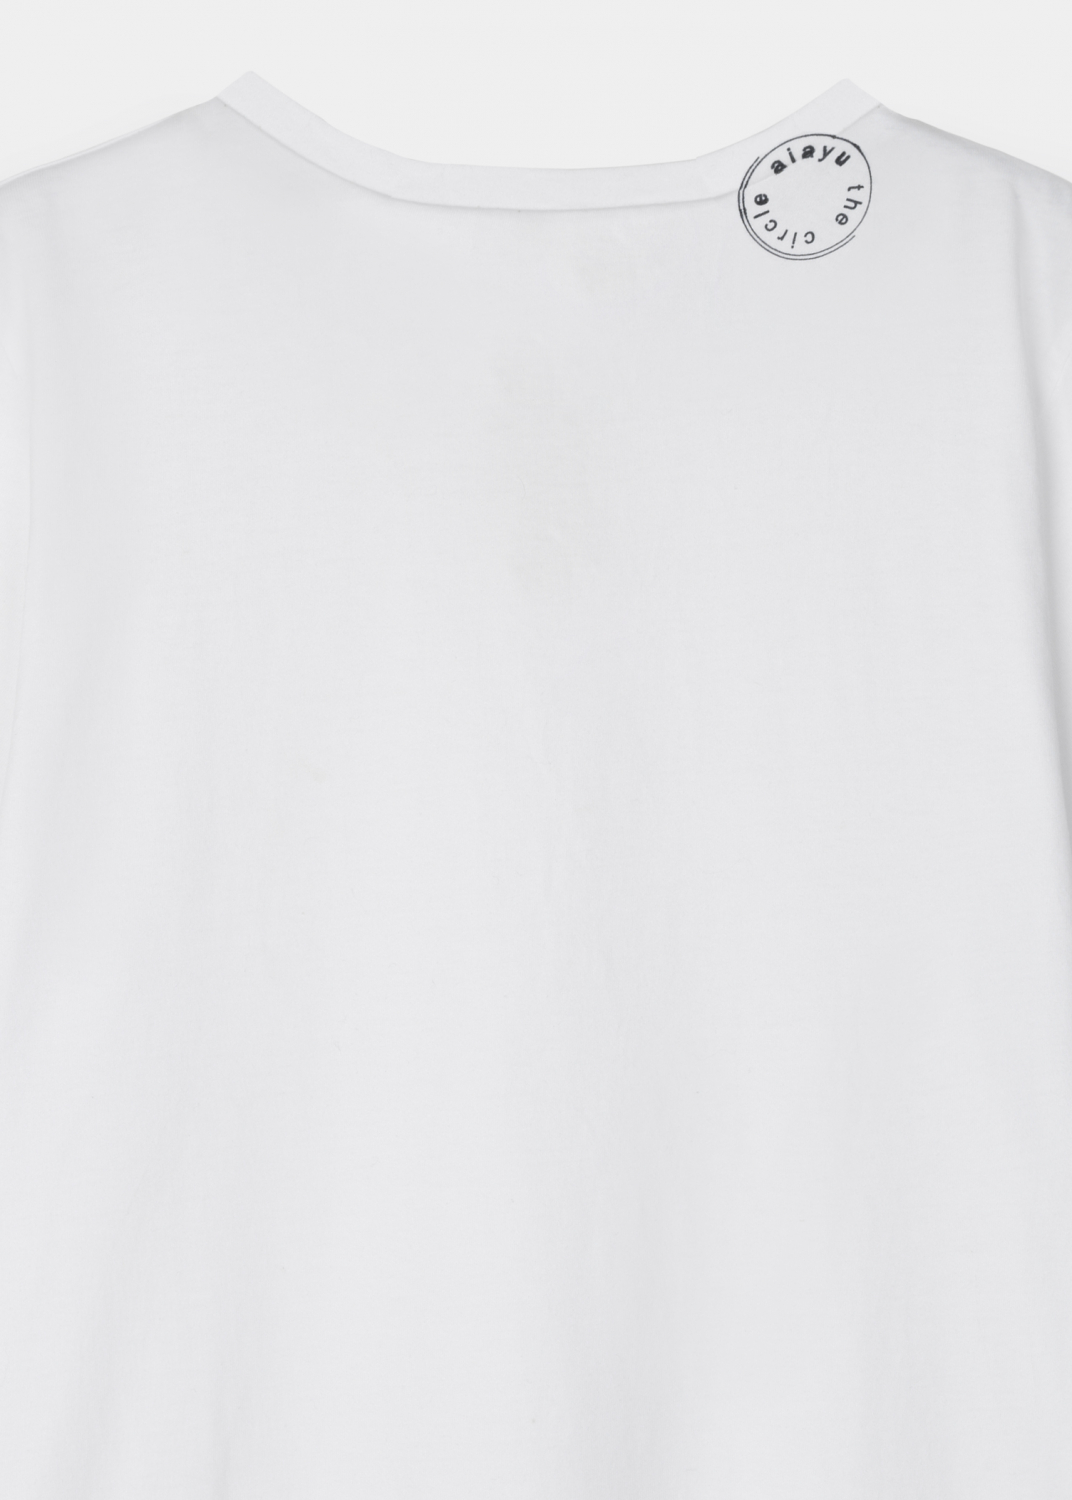 The Circle Collection - Circle Logo Tee Thumbnail